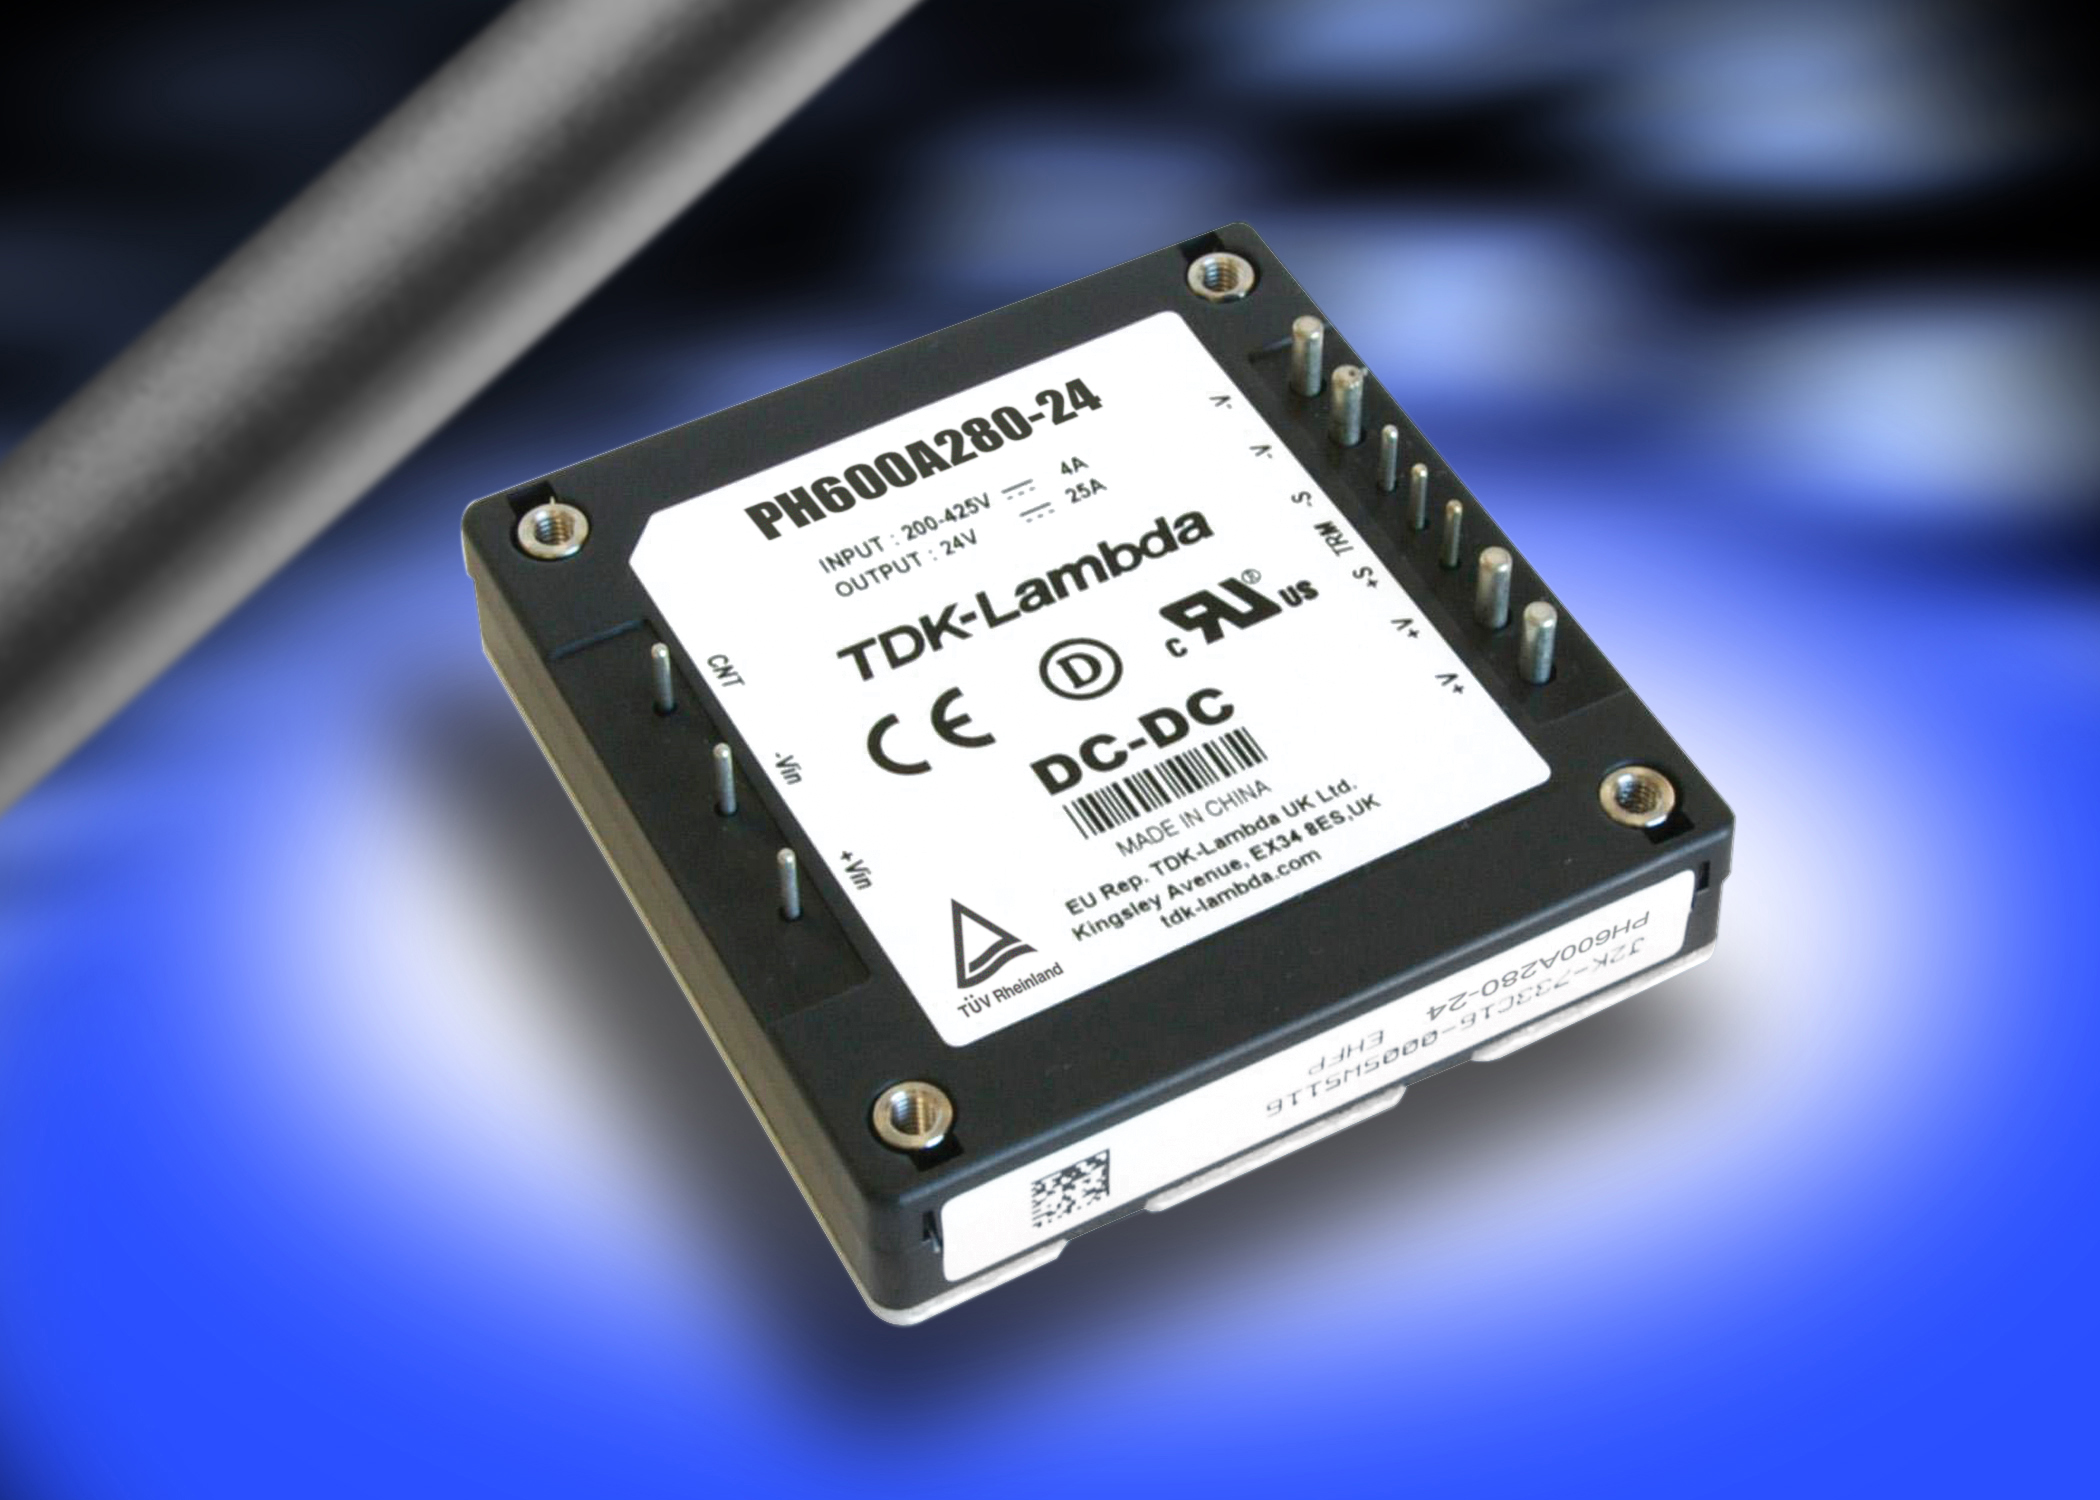 PH600A280‑24 – 200 to 425 V 600 W half-brick DC-DC converter